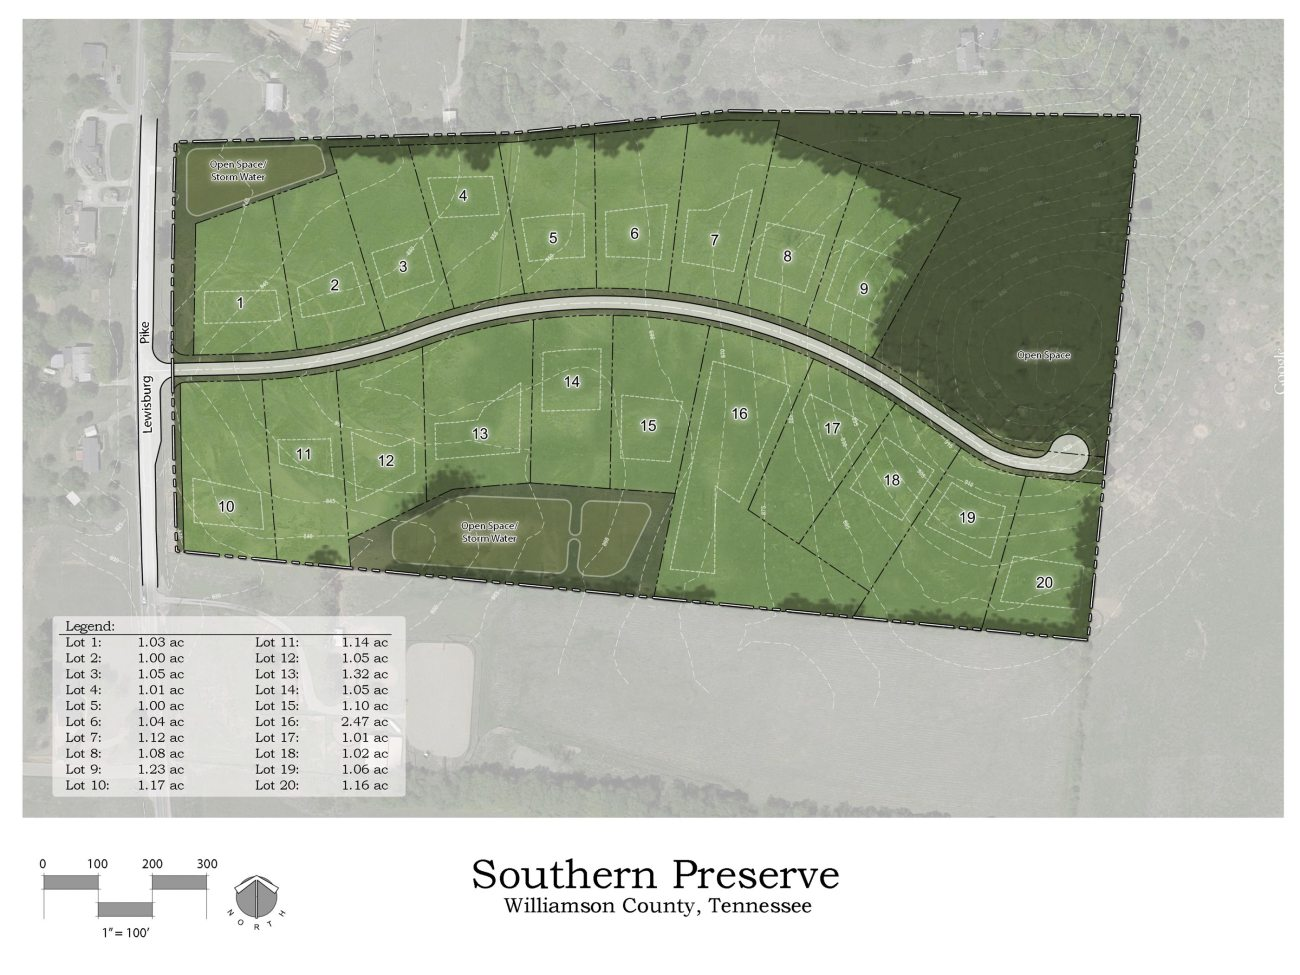 Site rendering of Southern Preserve by Jason Goddard